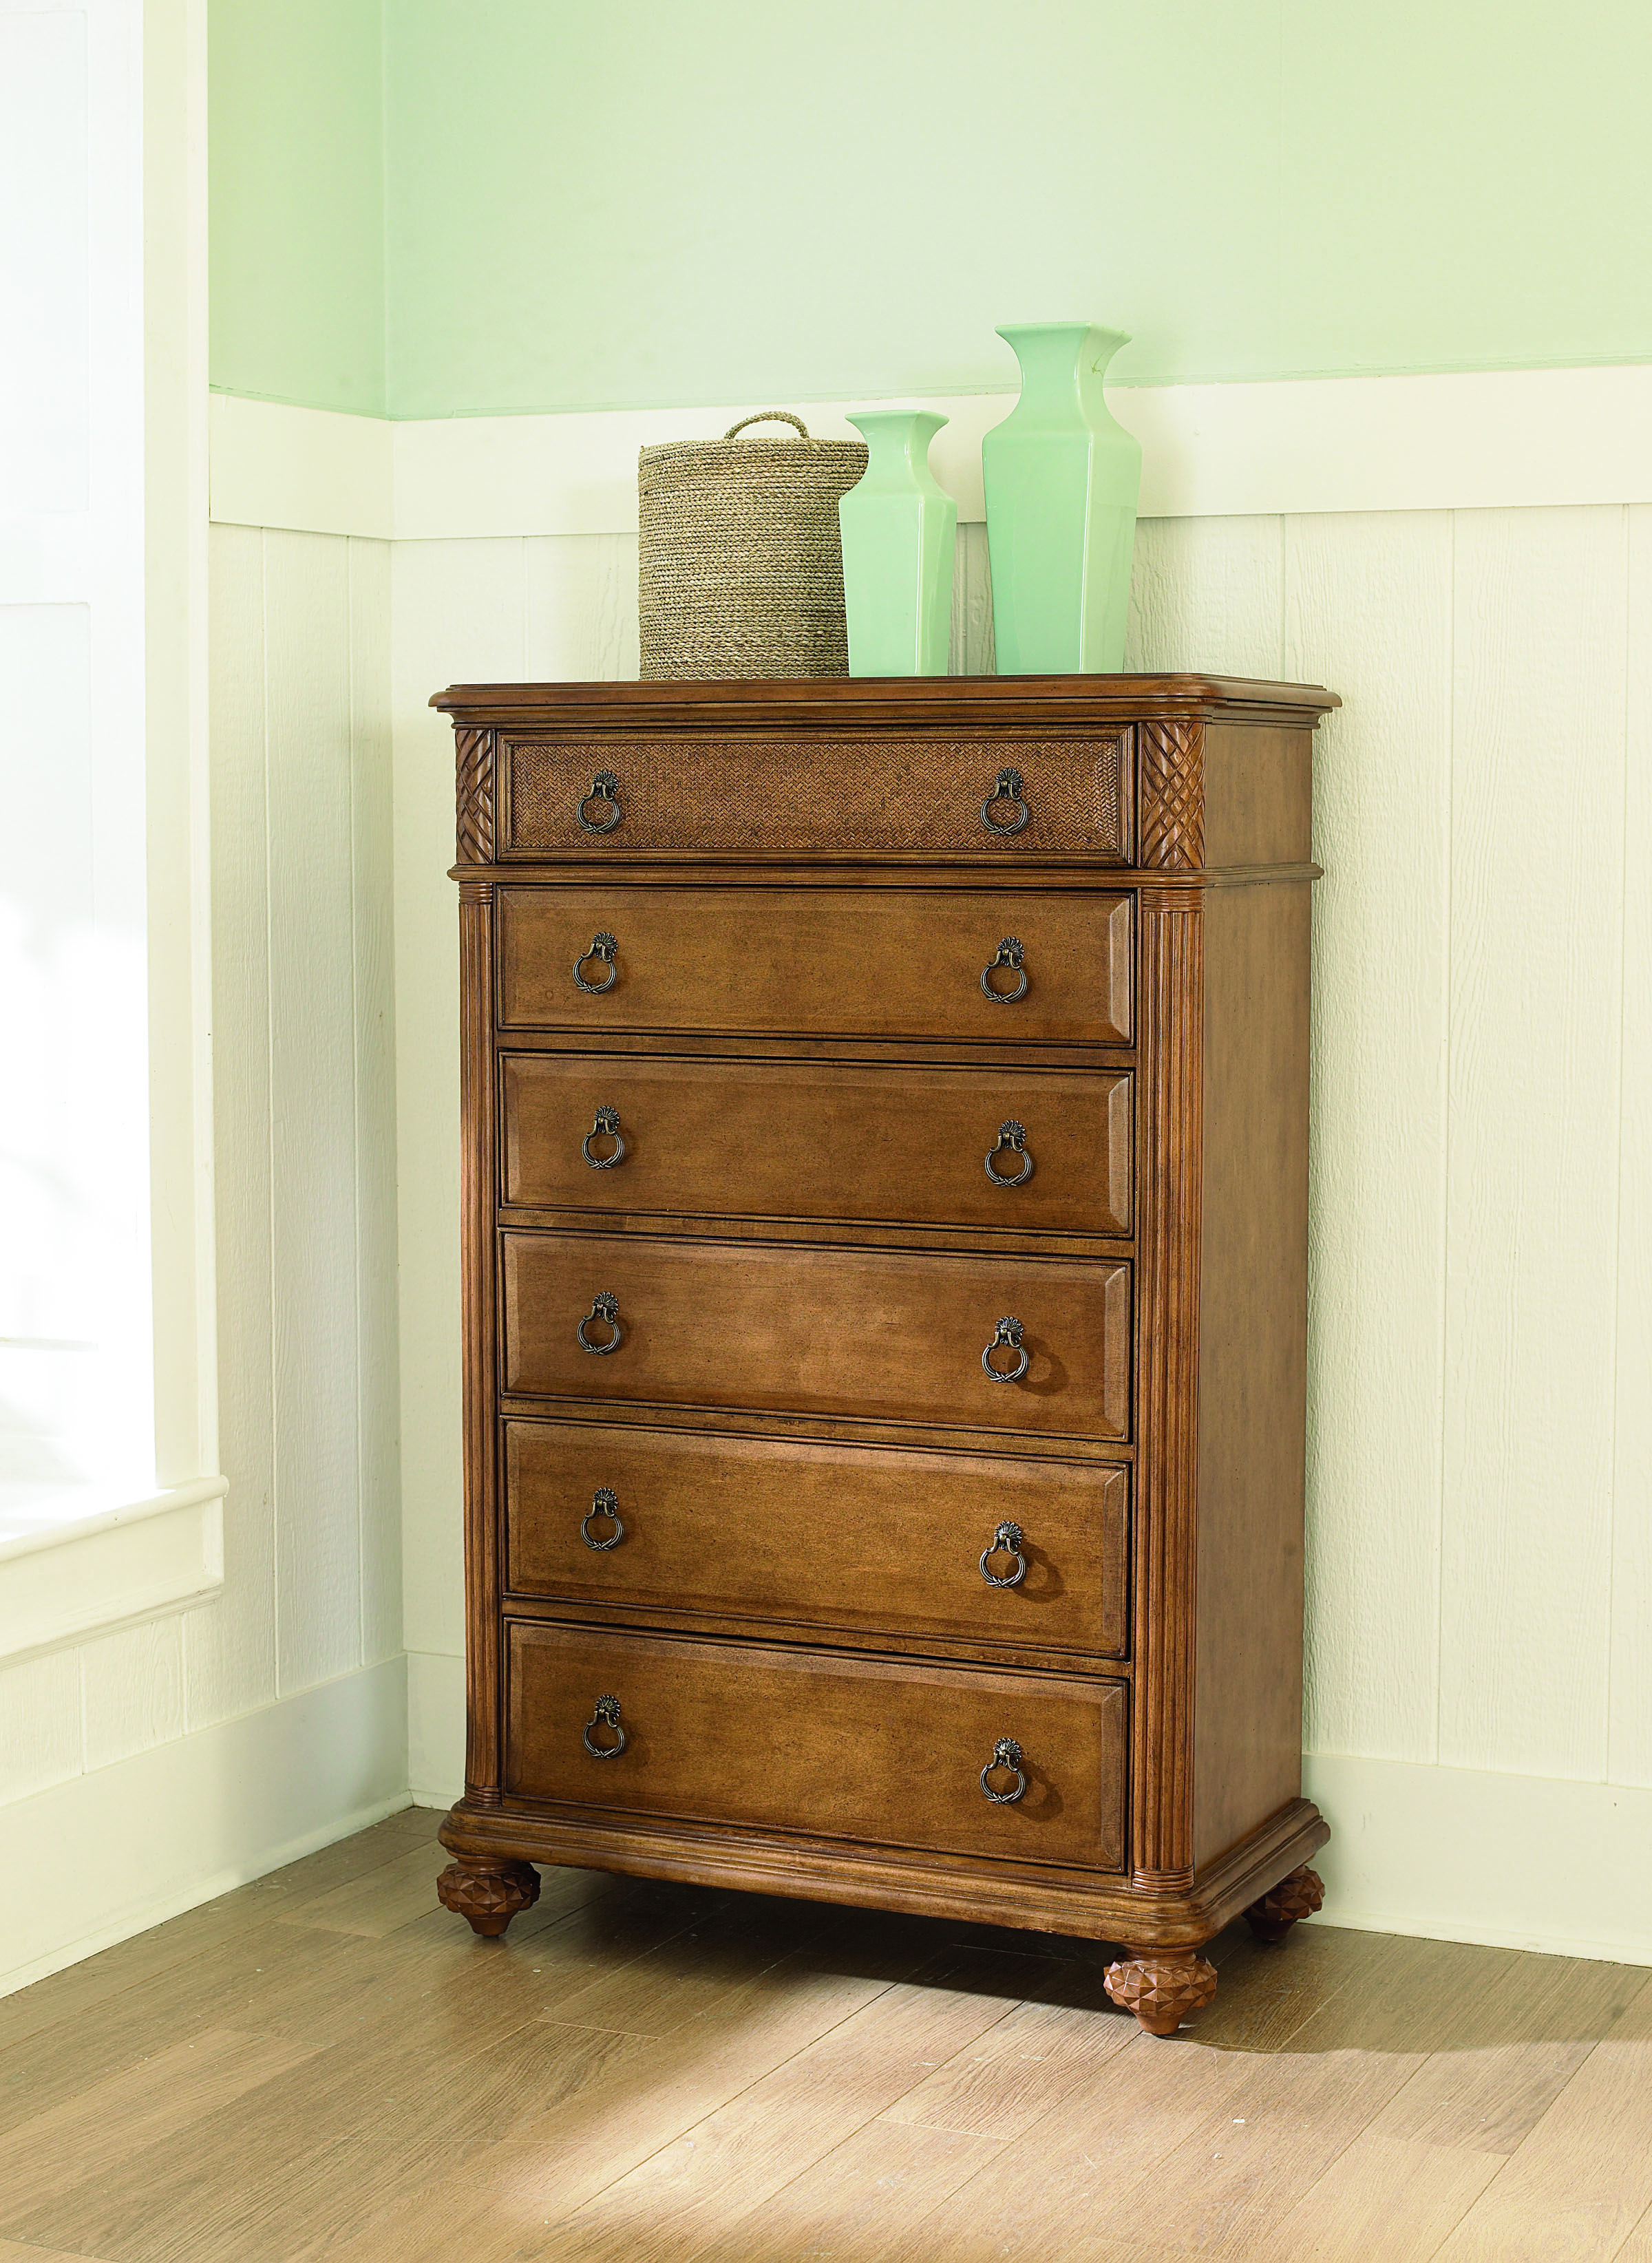 blc drawers of products drawer aspenhome chest nickel item with dresser street front number ifs